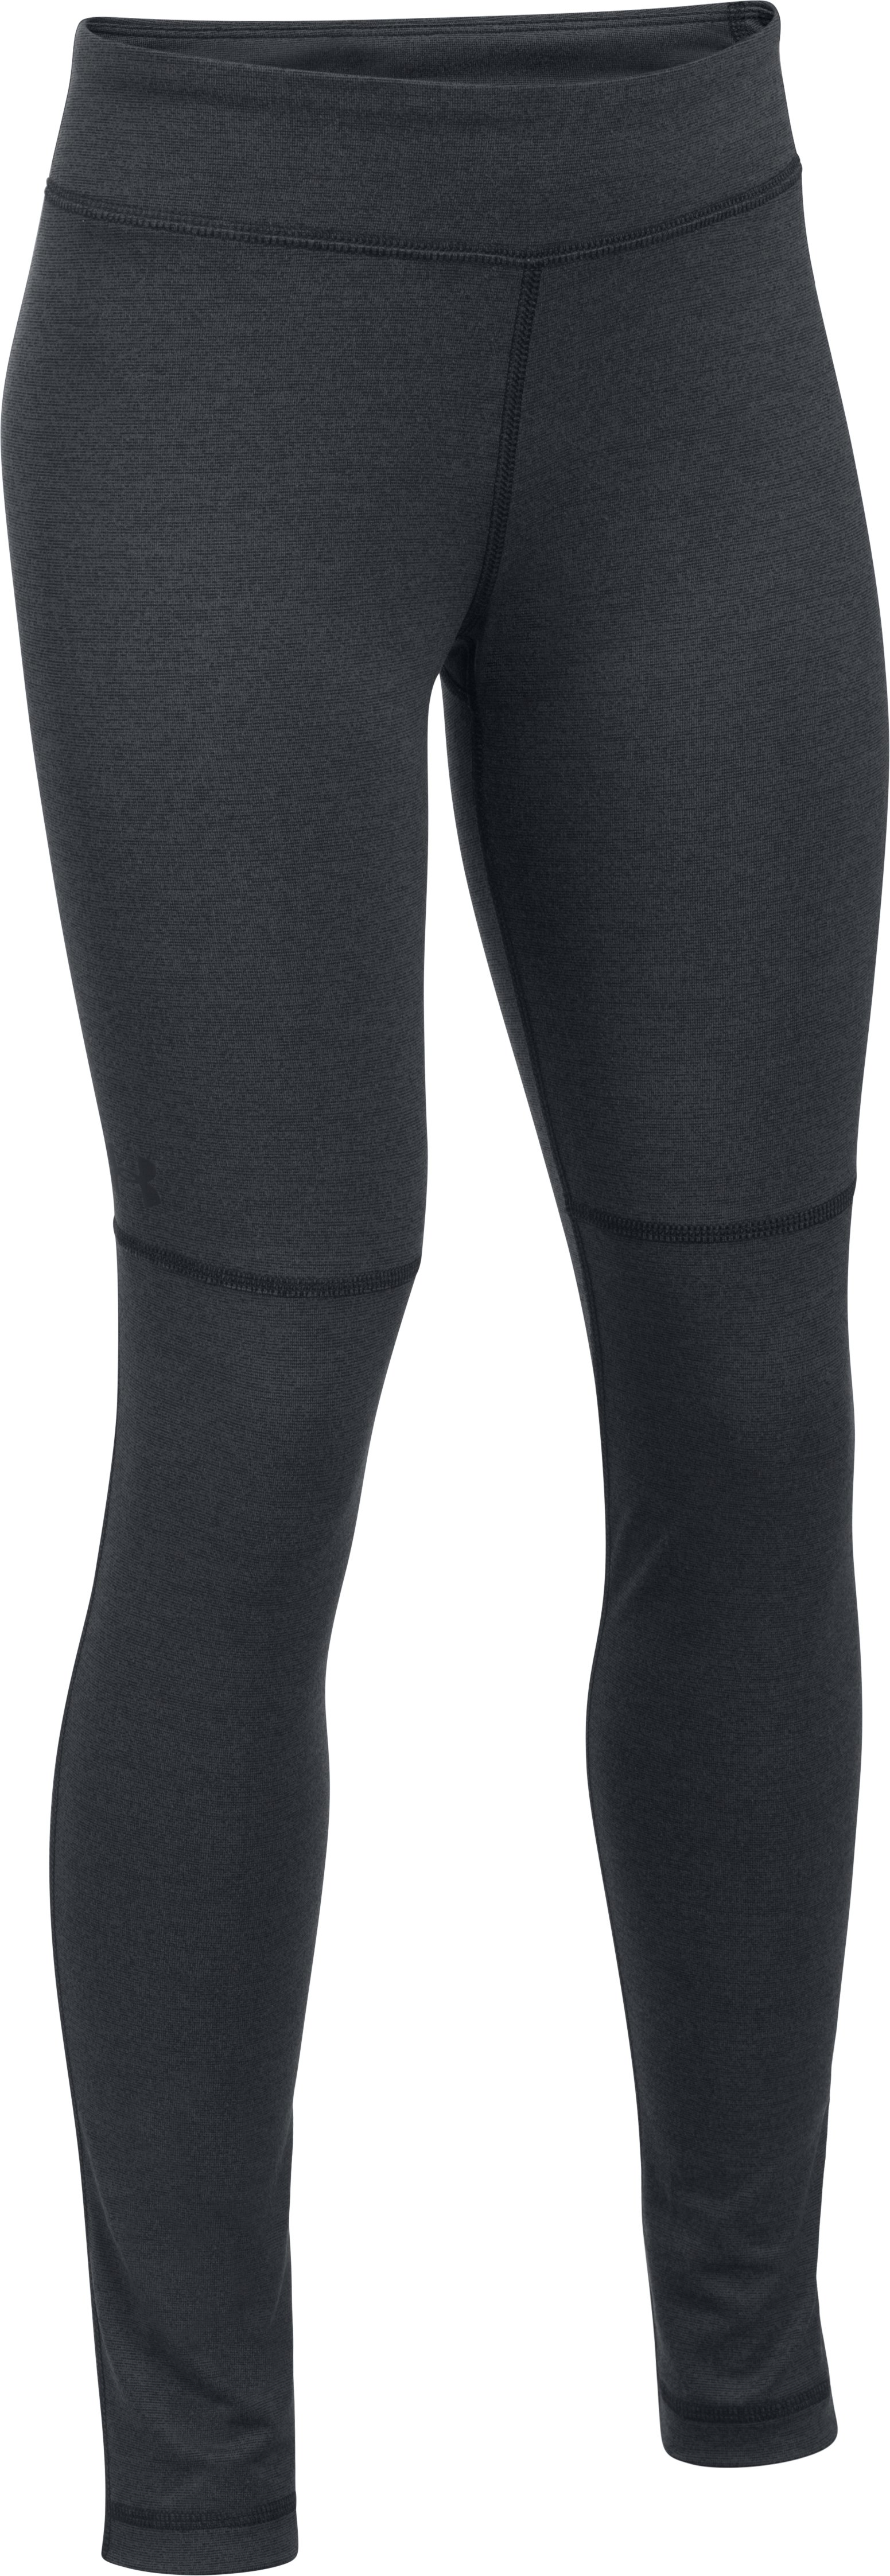 Girls' UA Elevated Training Plush Leggings, Black , undefined